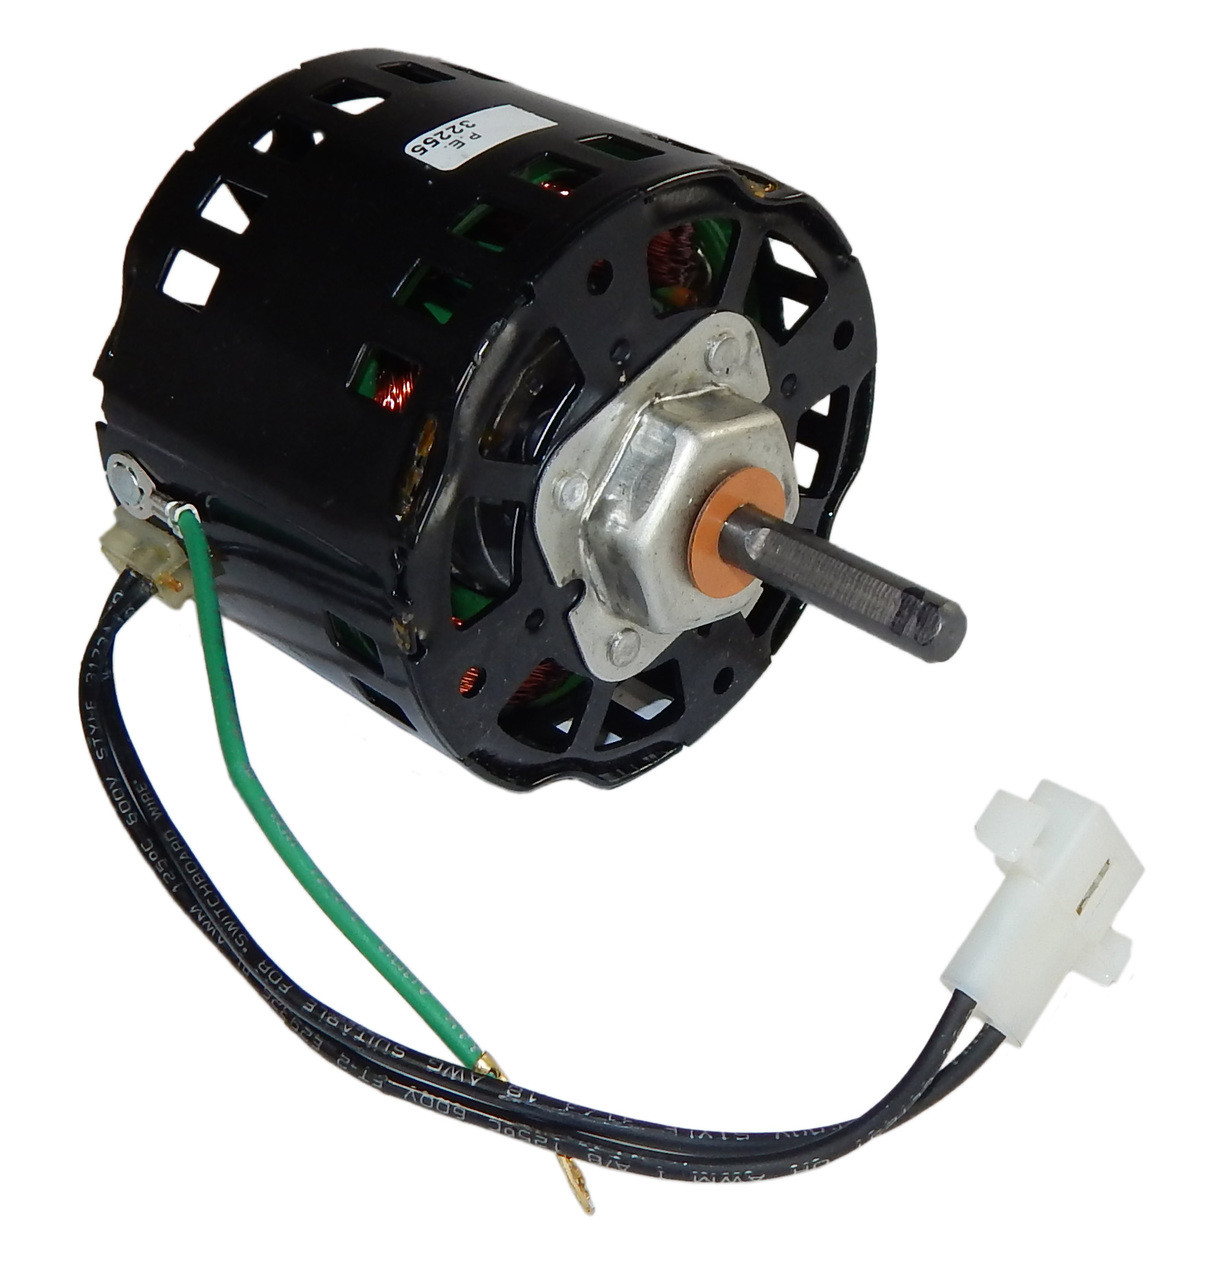 hight resolution of broan 360 replacement fan motor 97008583 1200 rpm 7 amps 120 volts rh electricmotorwarehouse com